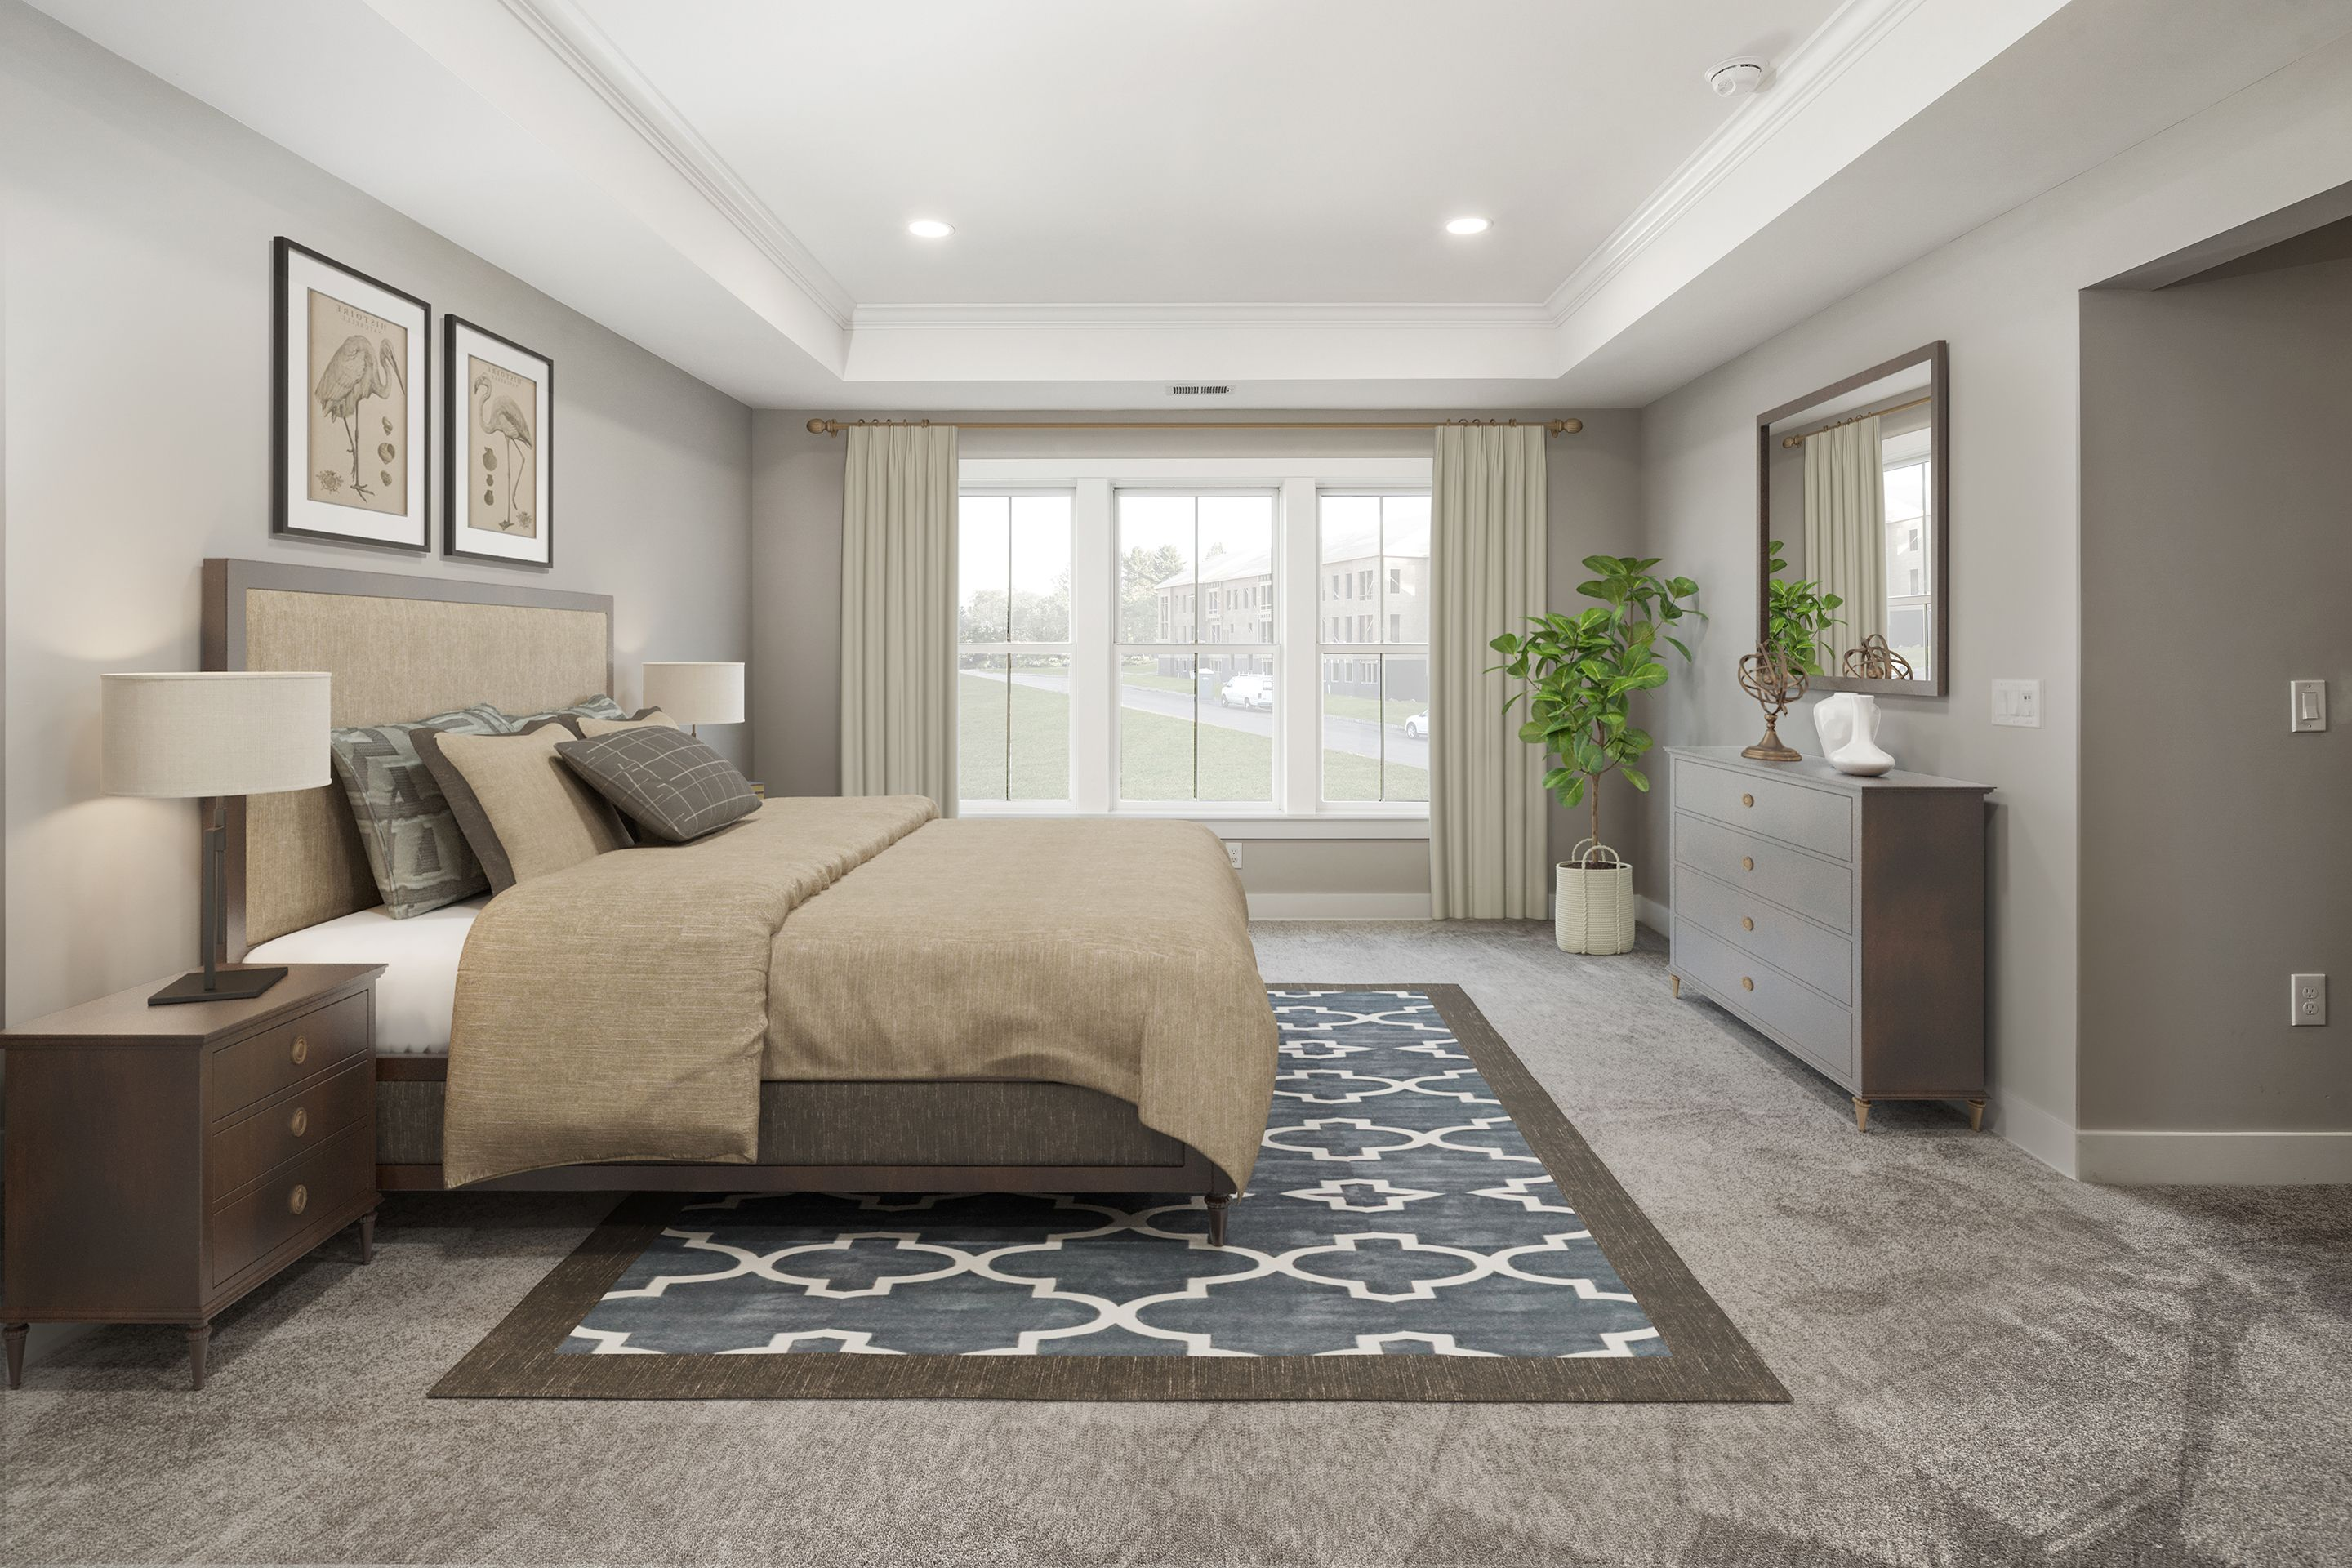 Bedroom featured in the Carter By Sharbell Development Corp. in Somerset County, NJ